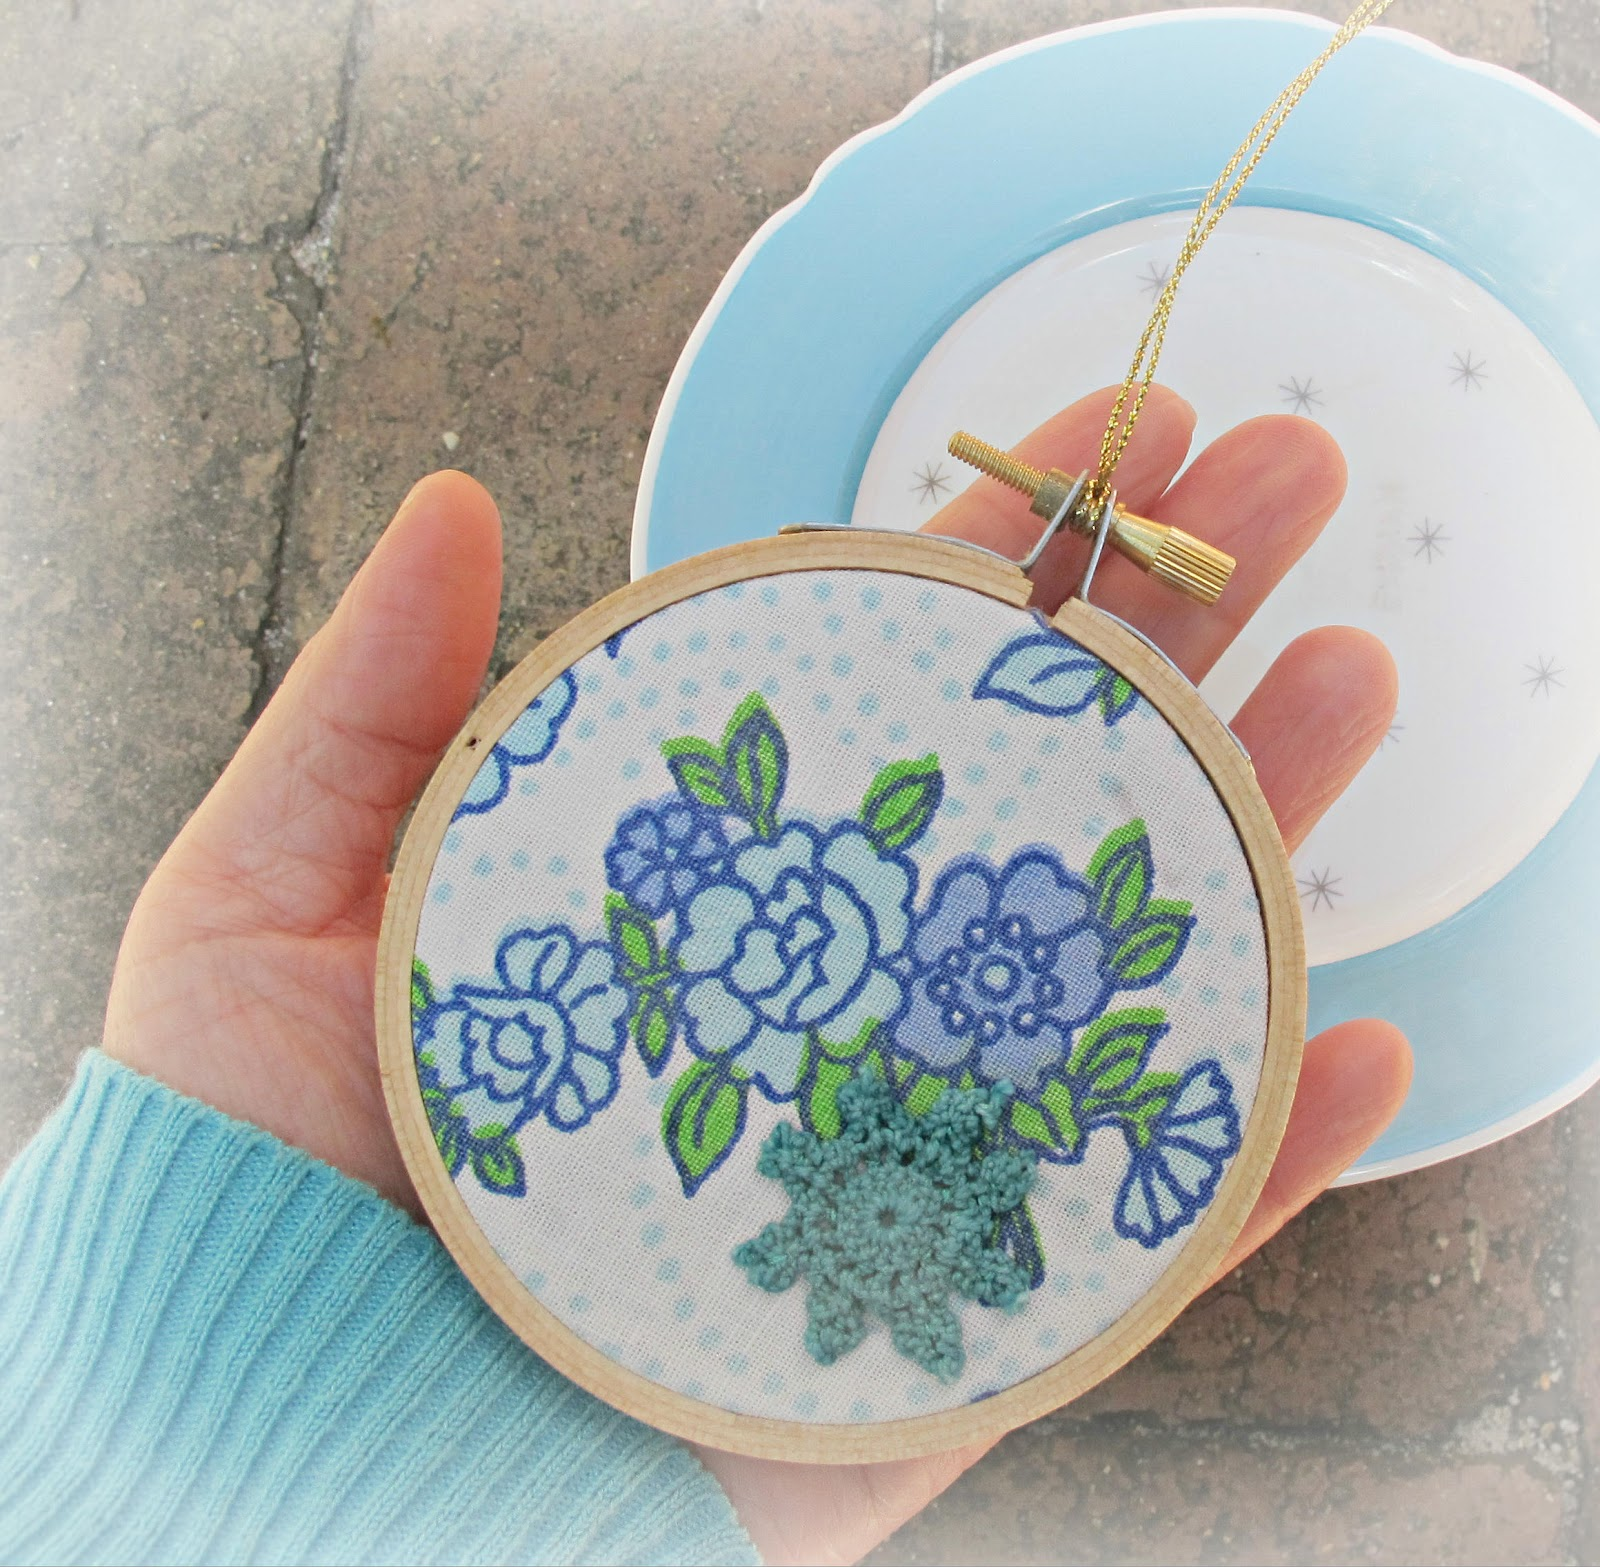 image embroidery hoop ornament vintage fabric blue flowers doily christmas domum vindemia